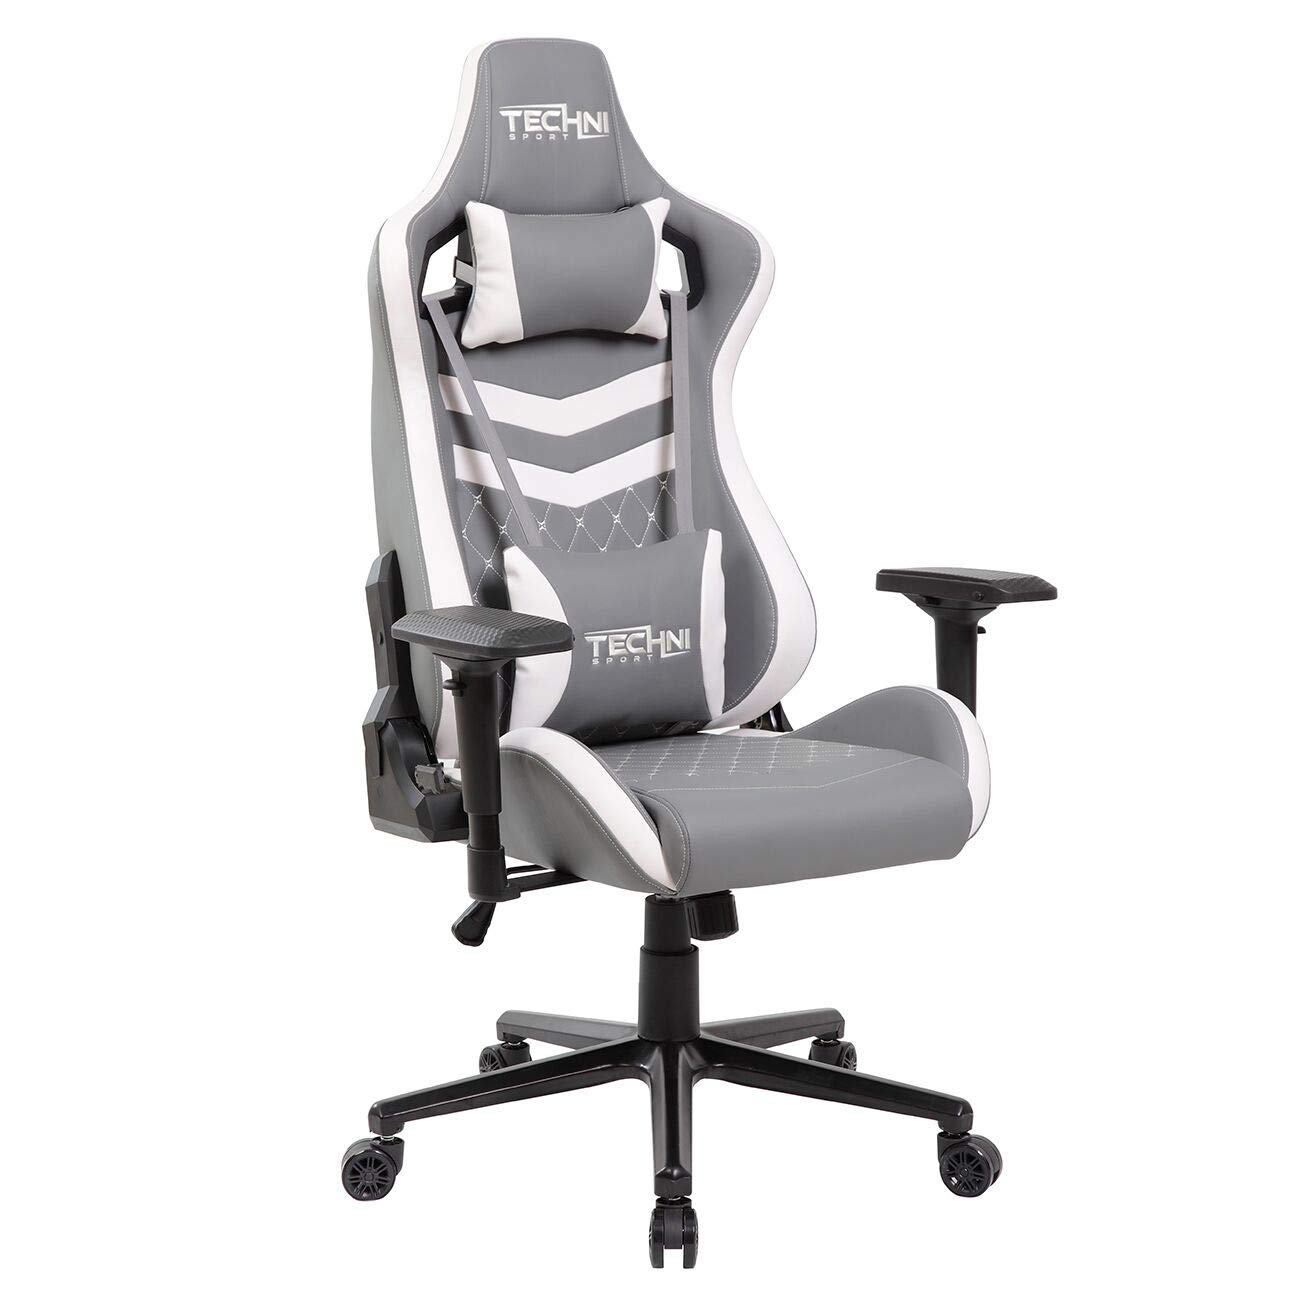 Modern Design Ergonomic High Back Racer Style Video Gaming Chair Two Tone Grey-White by Modern Design